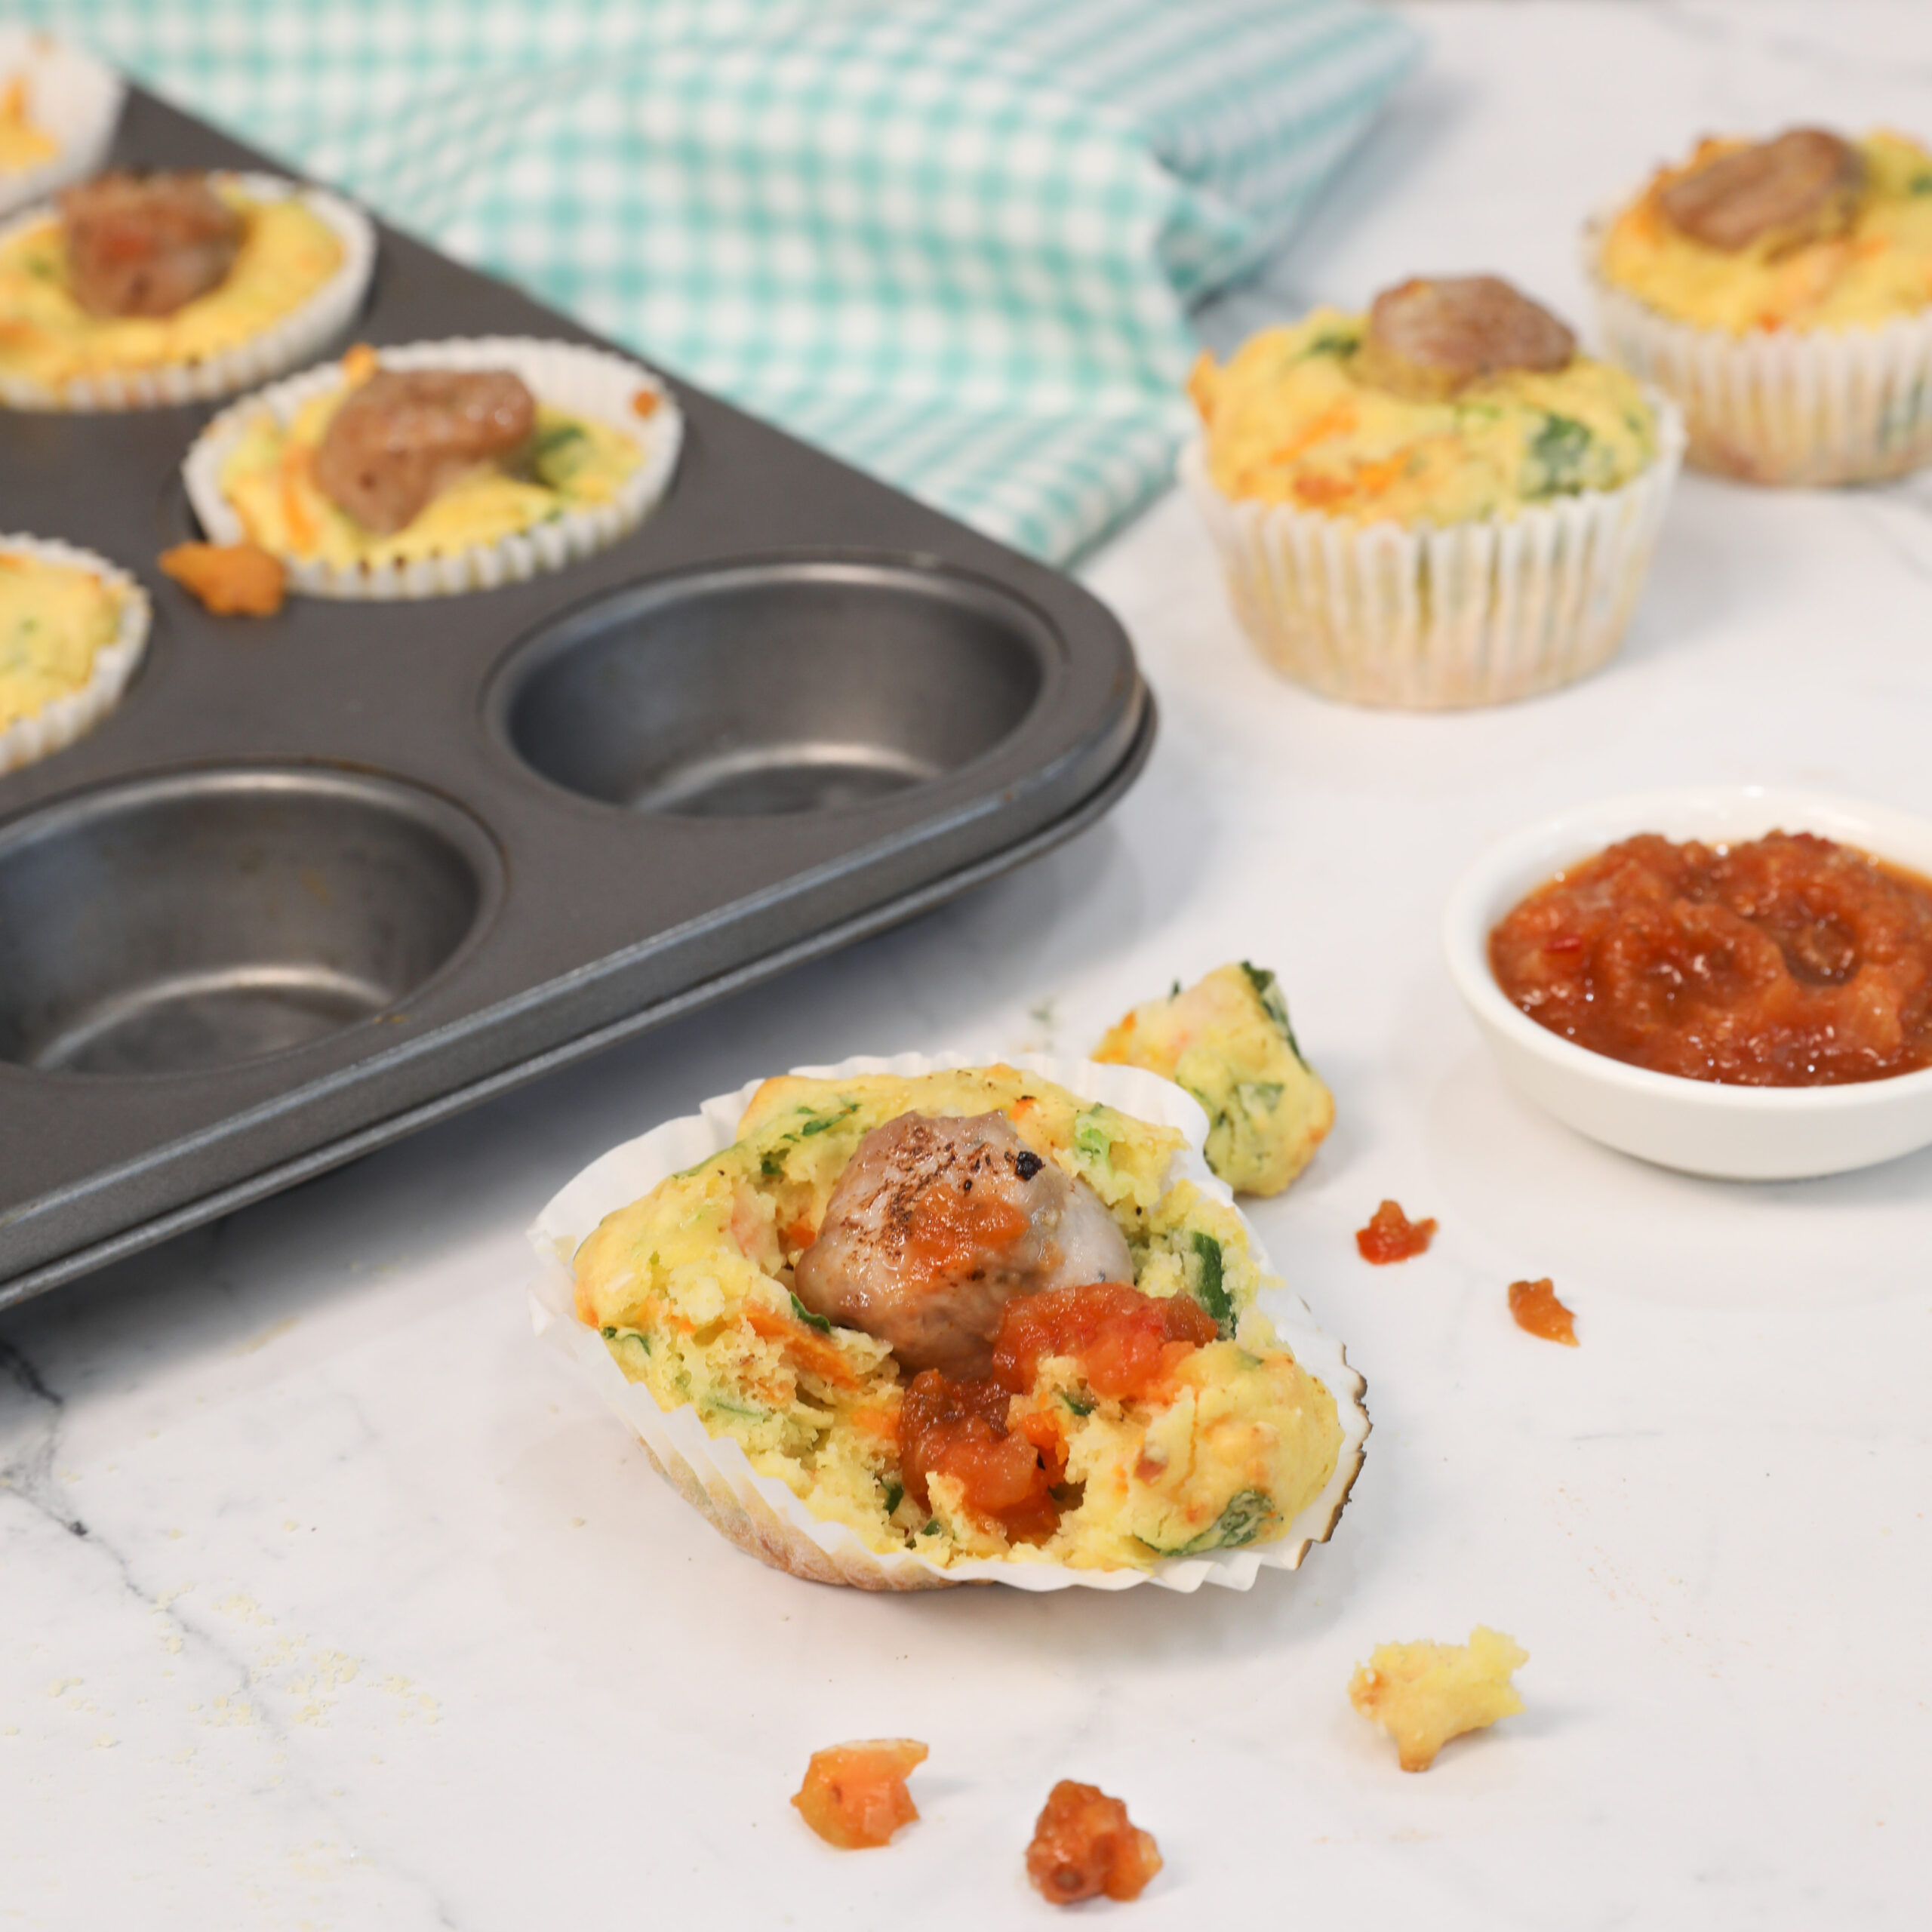 Sausage and sweet potato muffins